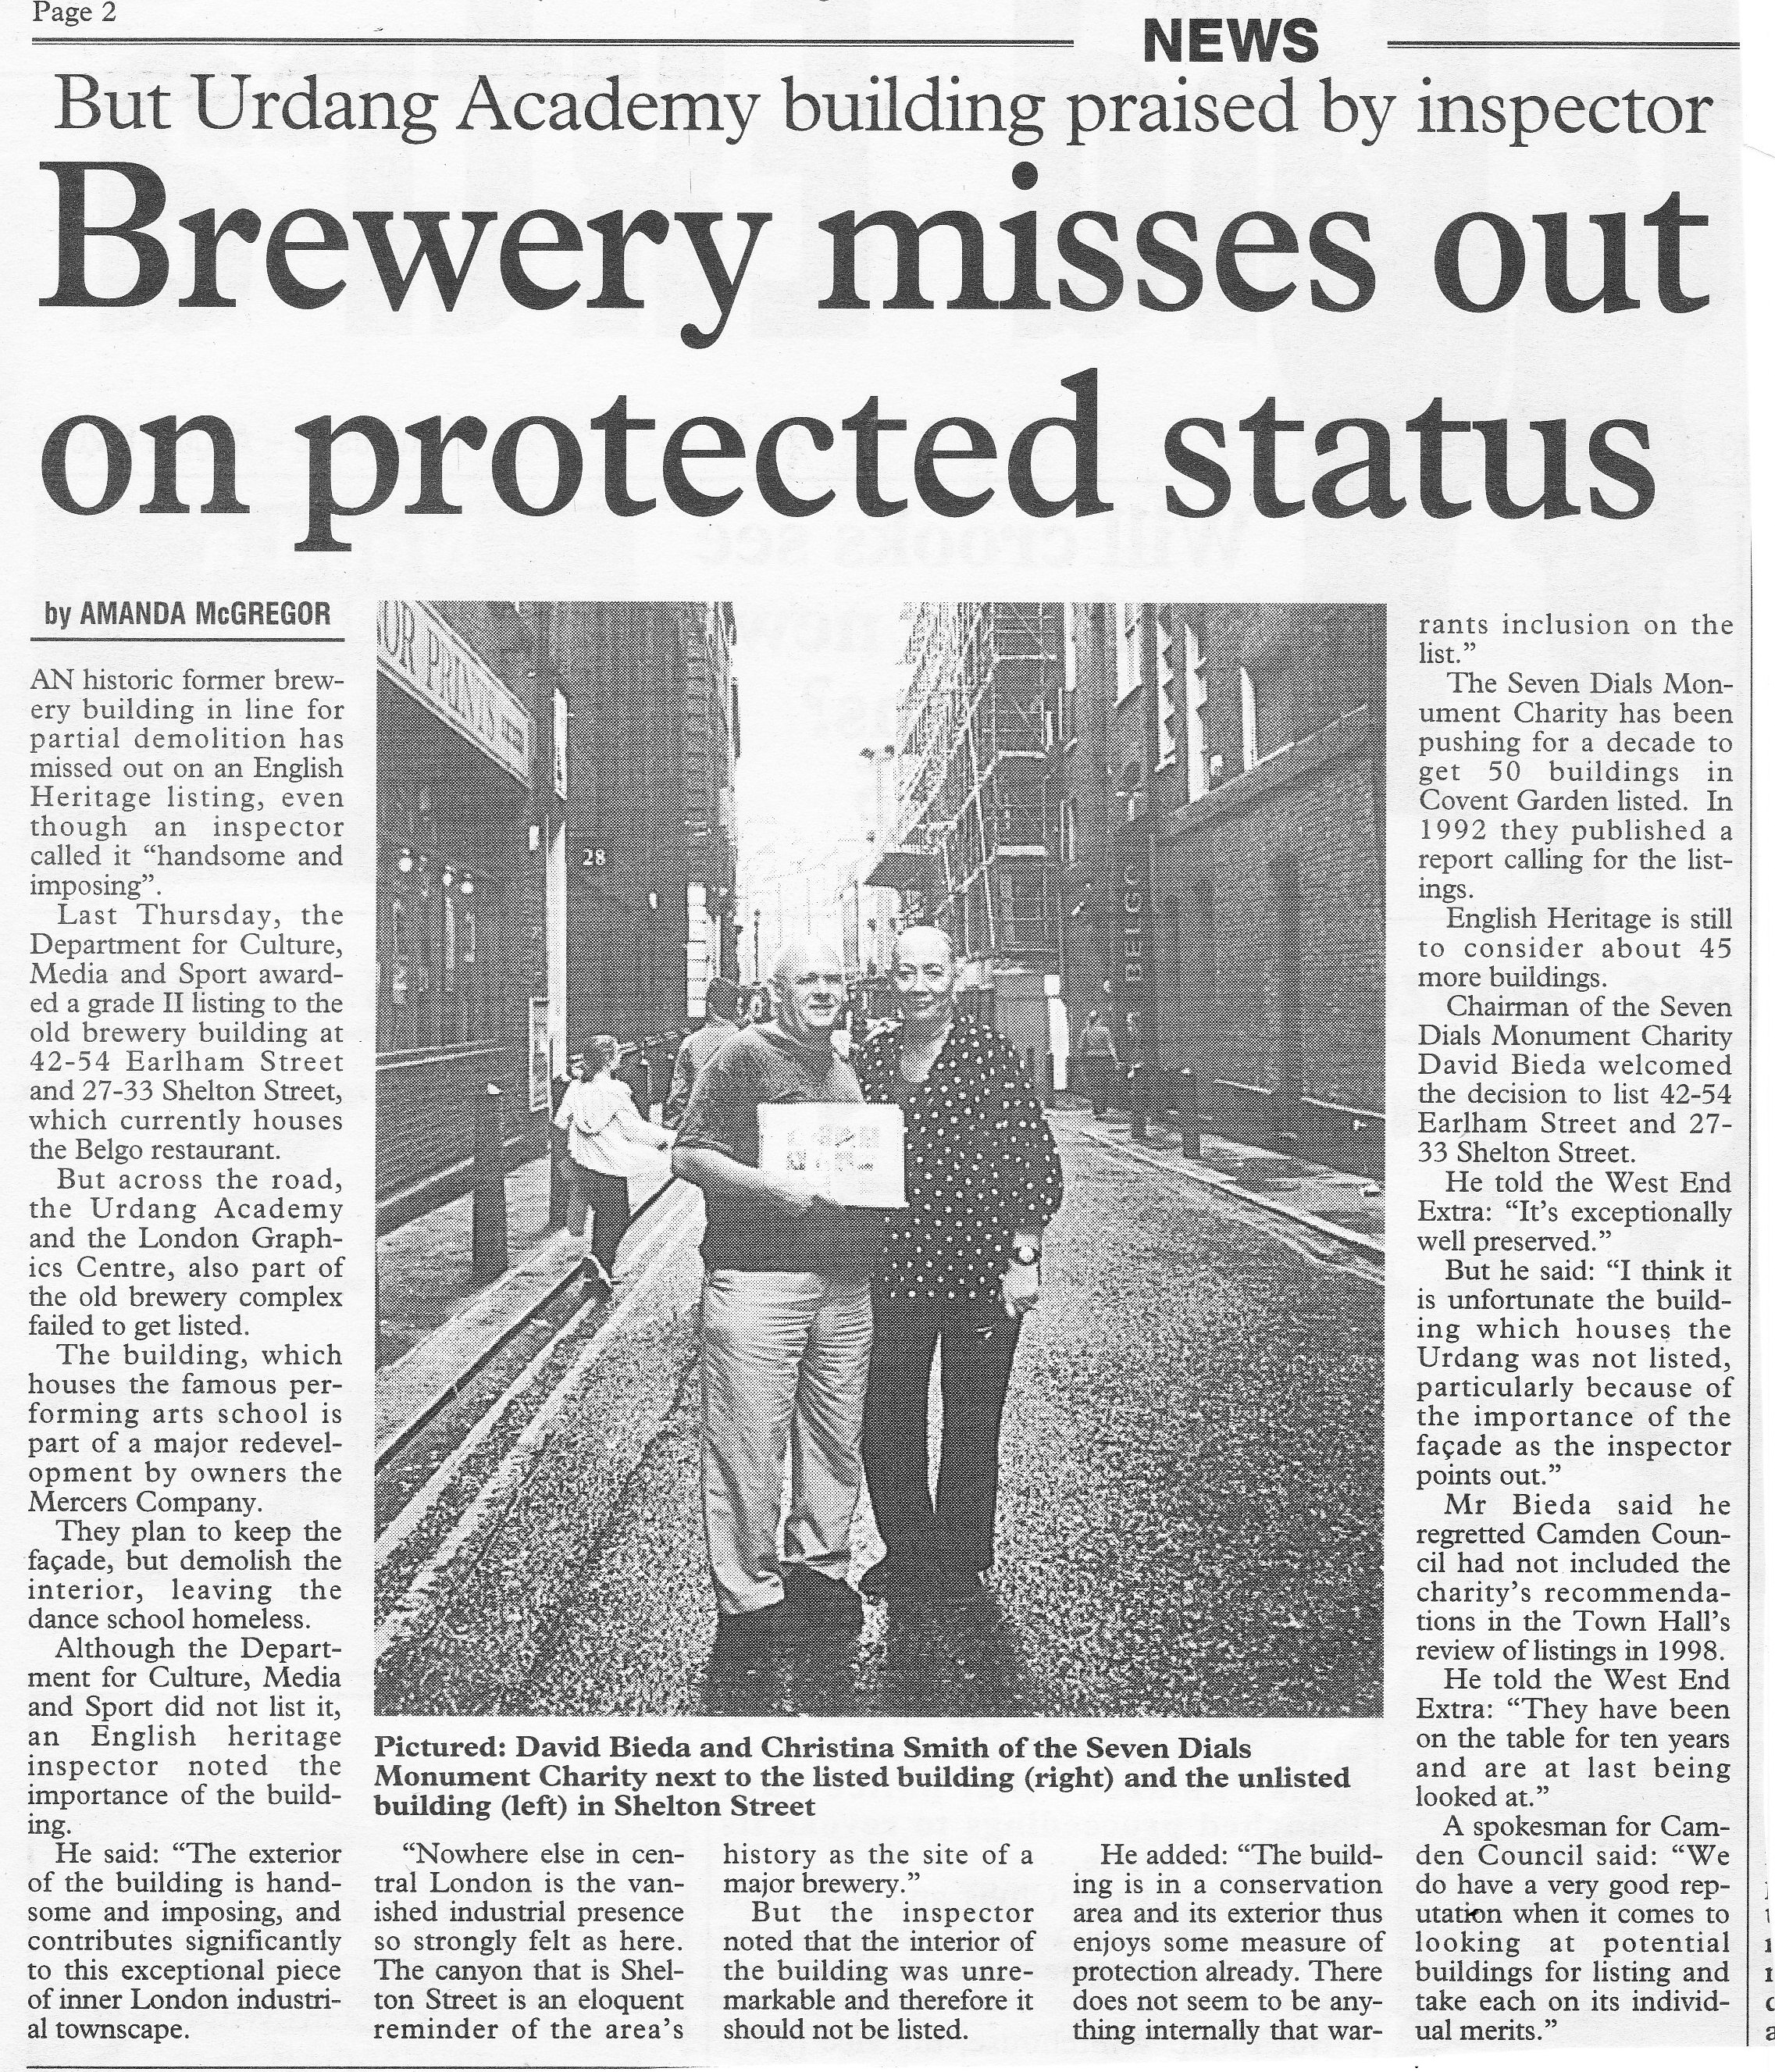 August 2002 – West End Extra: Brewery misses out on protected status.